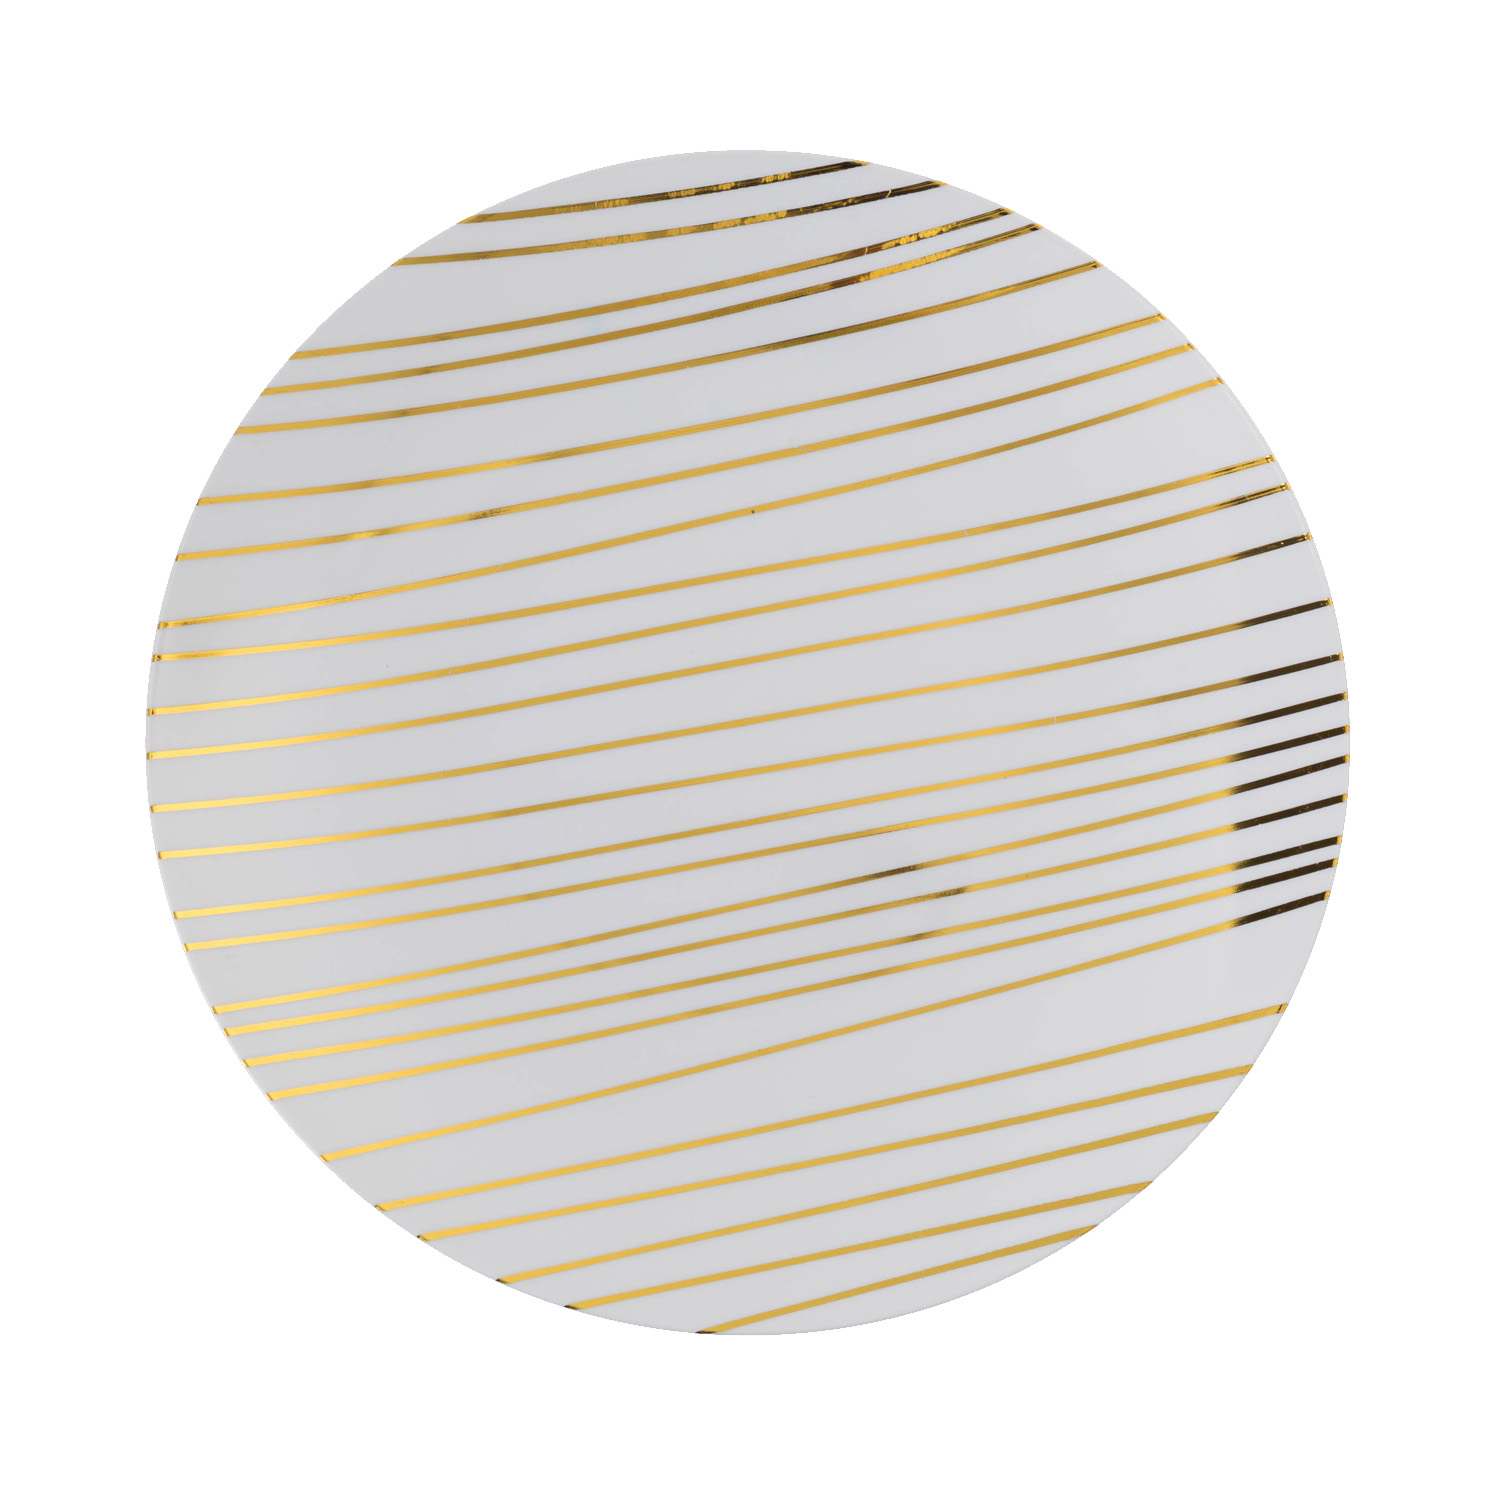 8 in glam design plastic plates 10 ct